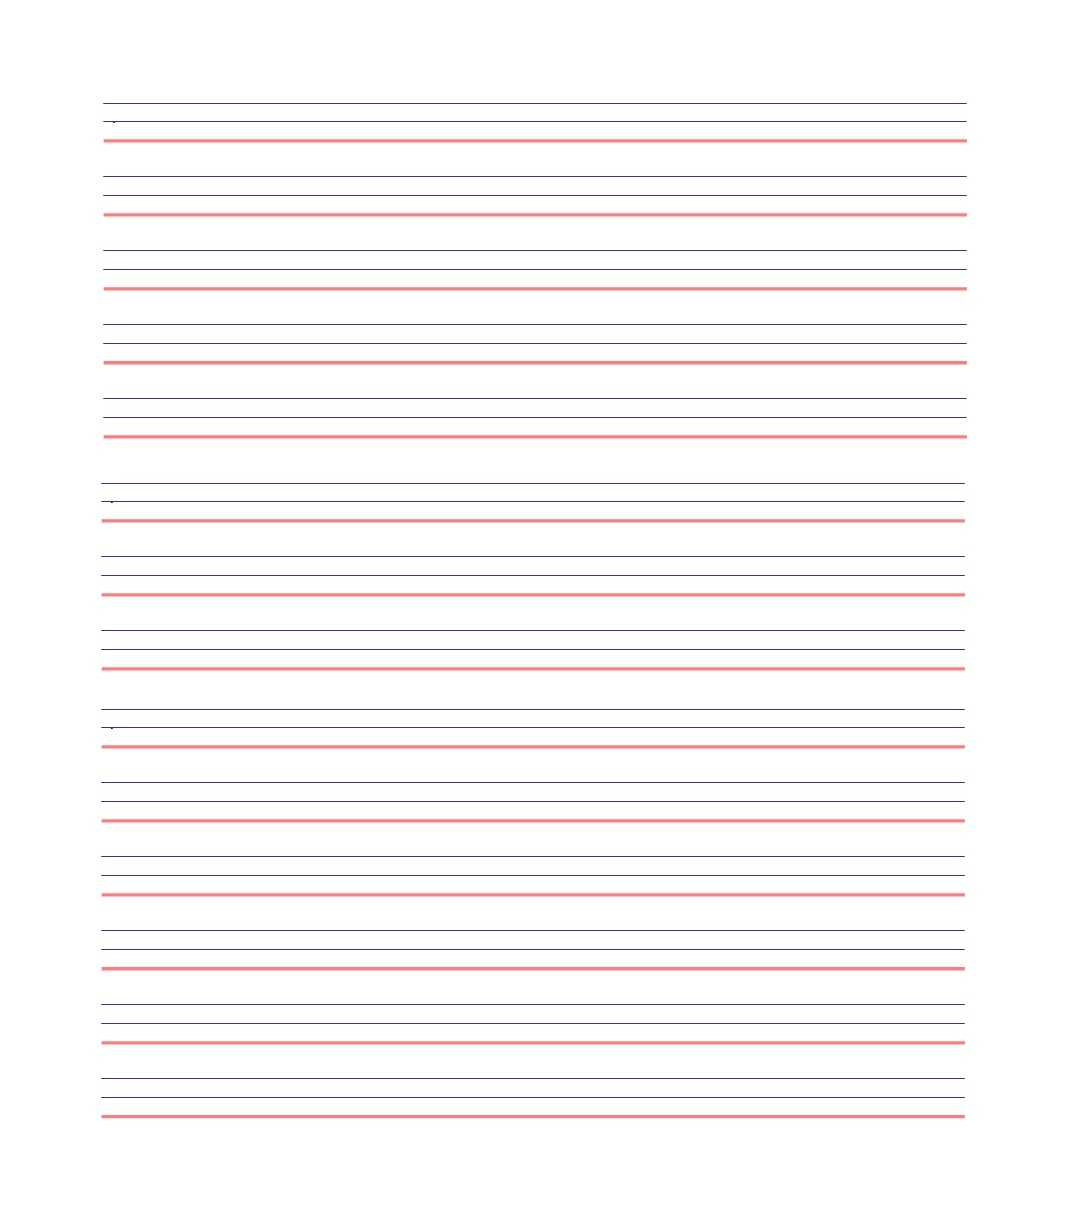 32 Printable Lined Paper Templates ᐅ Template Lab with regard to Microsoft Word Lined Paper Template